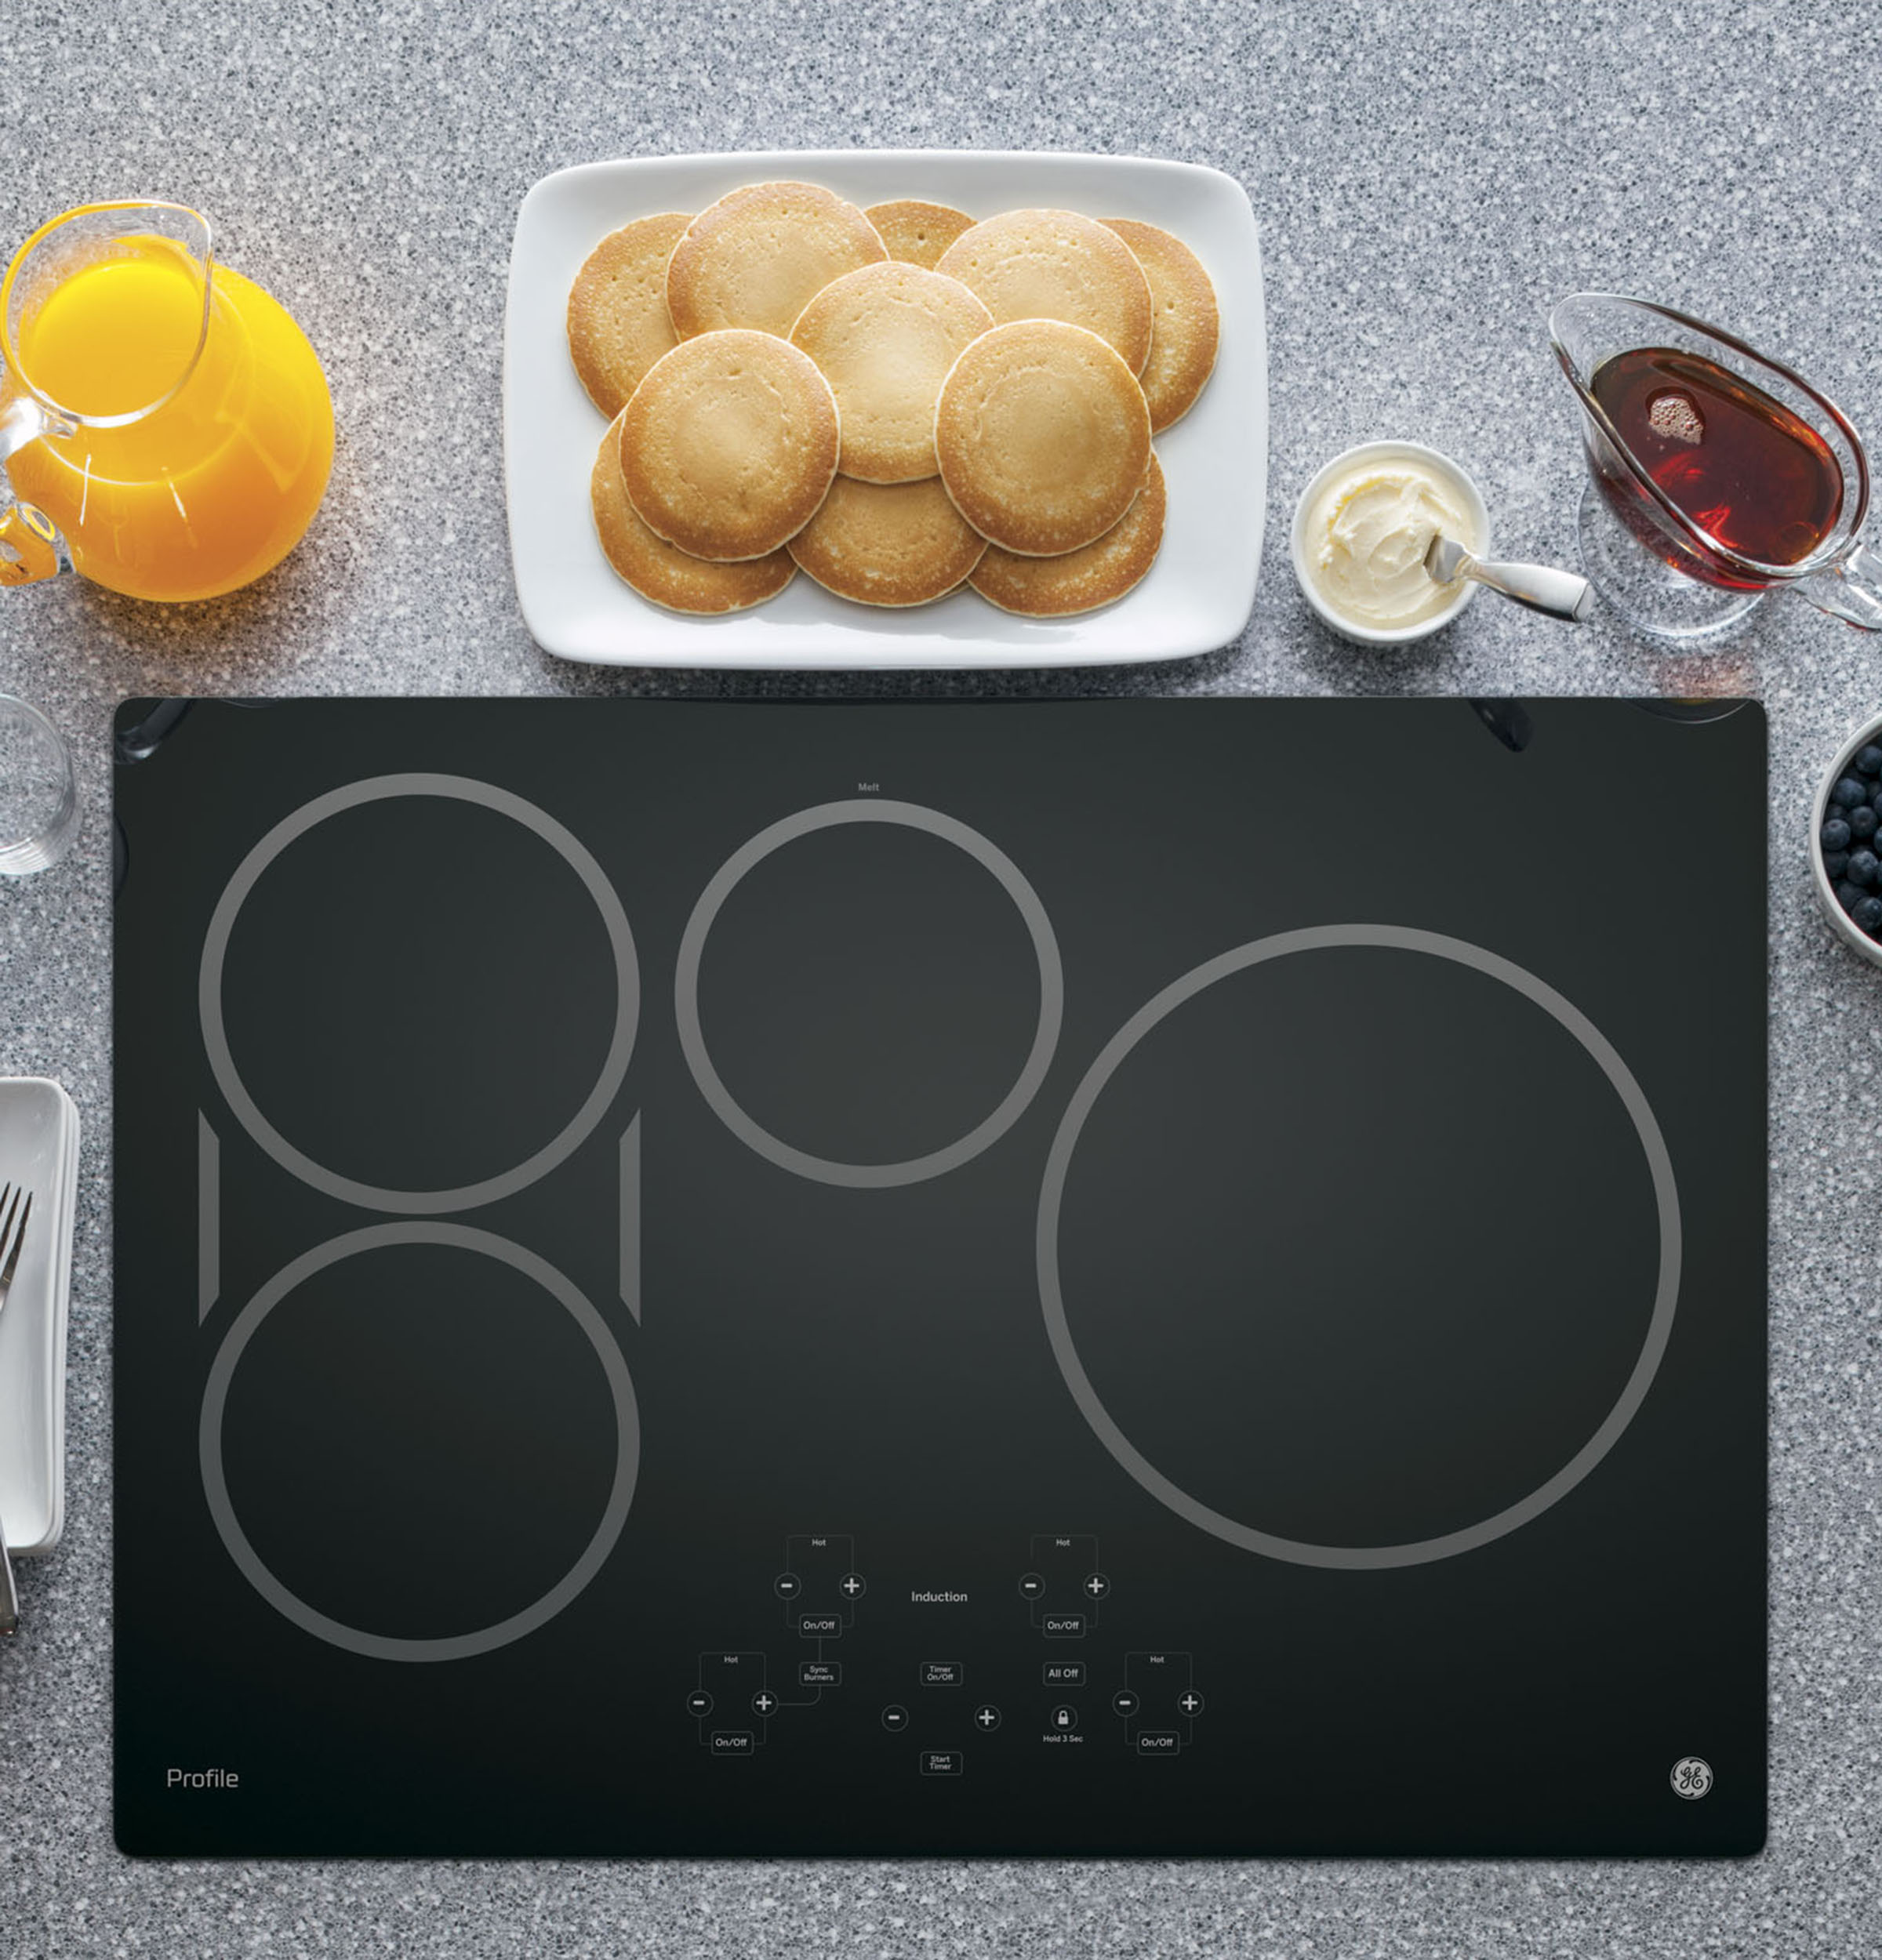 induction cooktop installation instructions